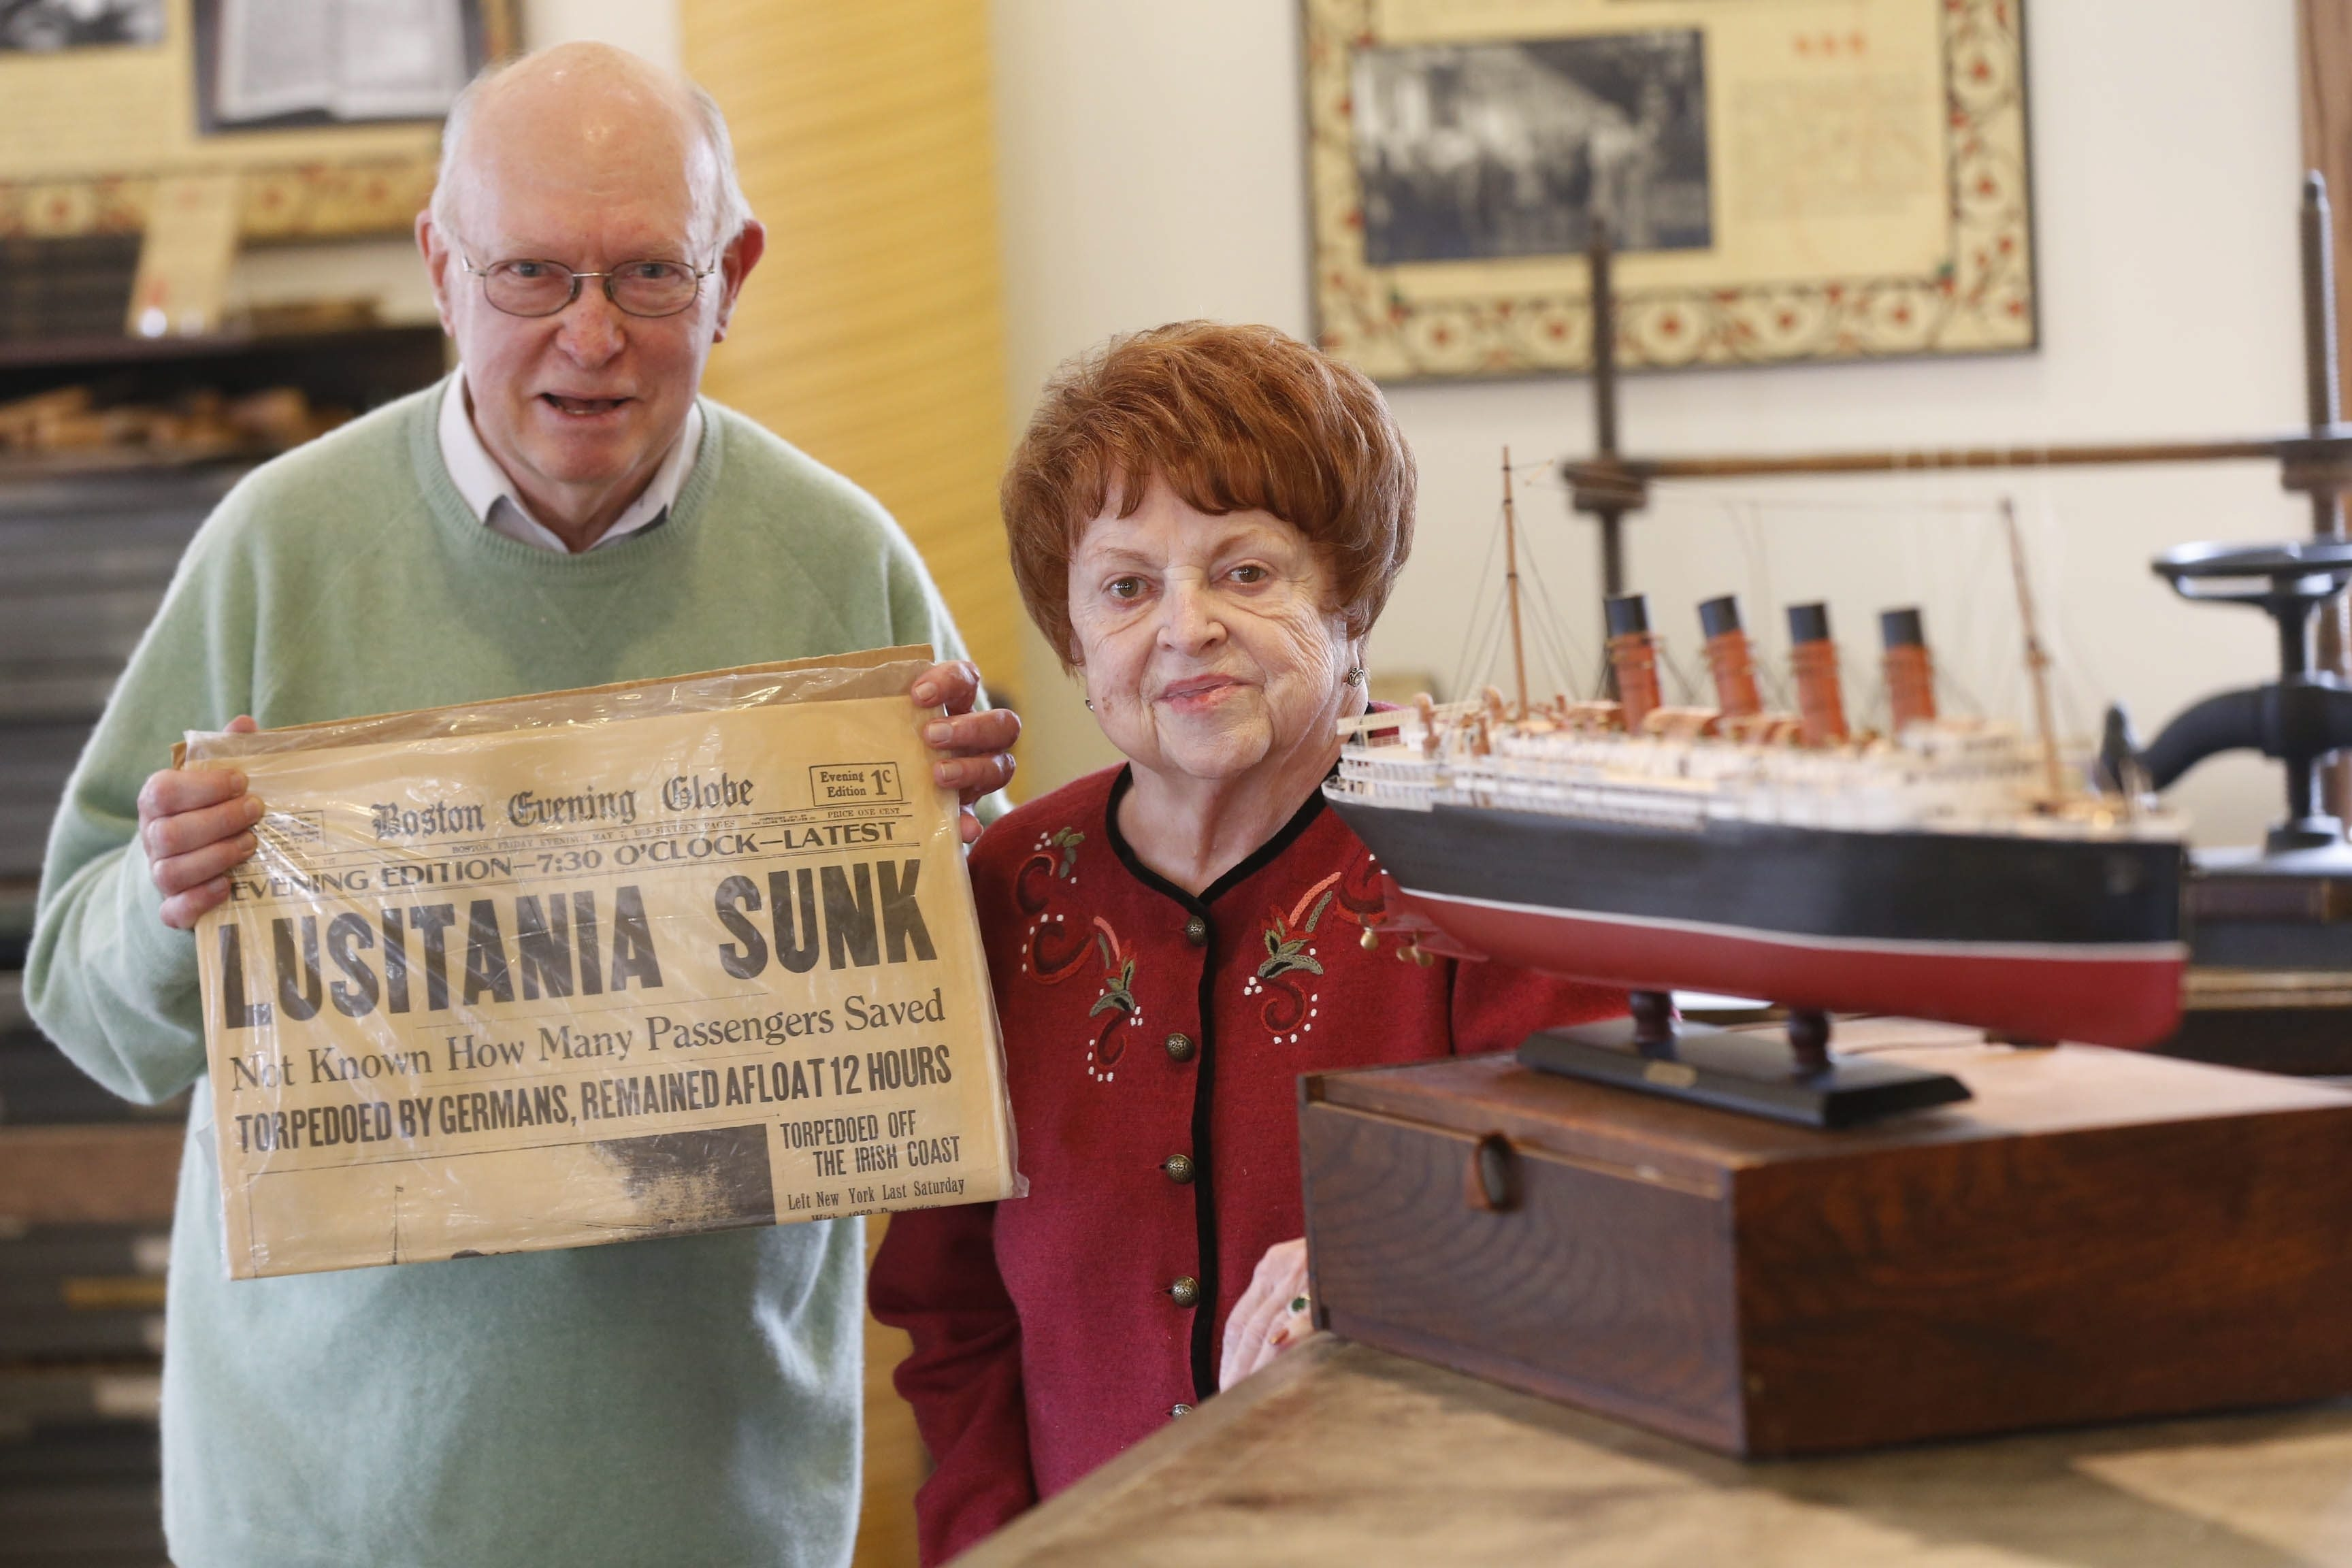 Meryl Trefzer, left, and his wife Patricia, are shown with some of the RMS Lusitania items they donated to the Roycroft Visitors Center inside the Power Station on April 17, 2015.